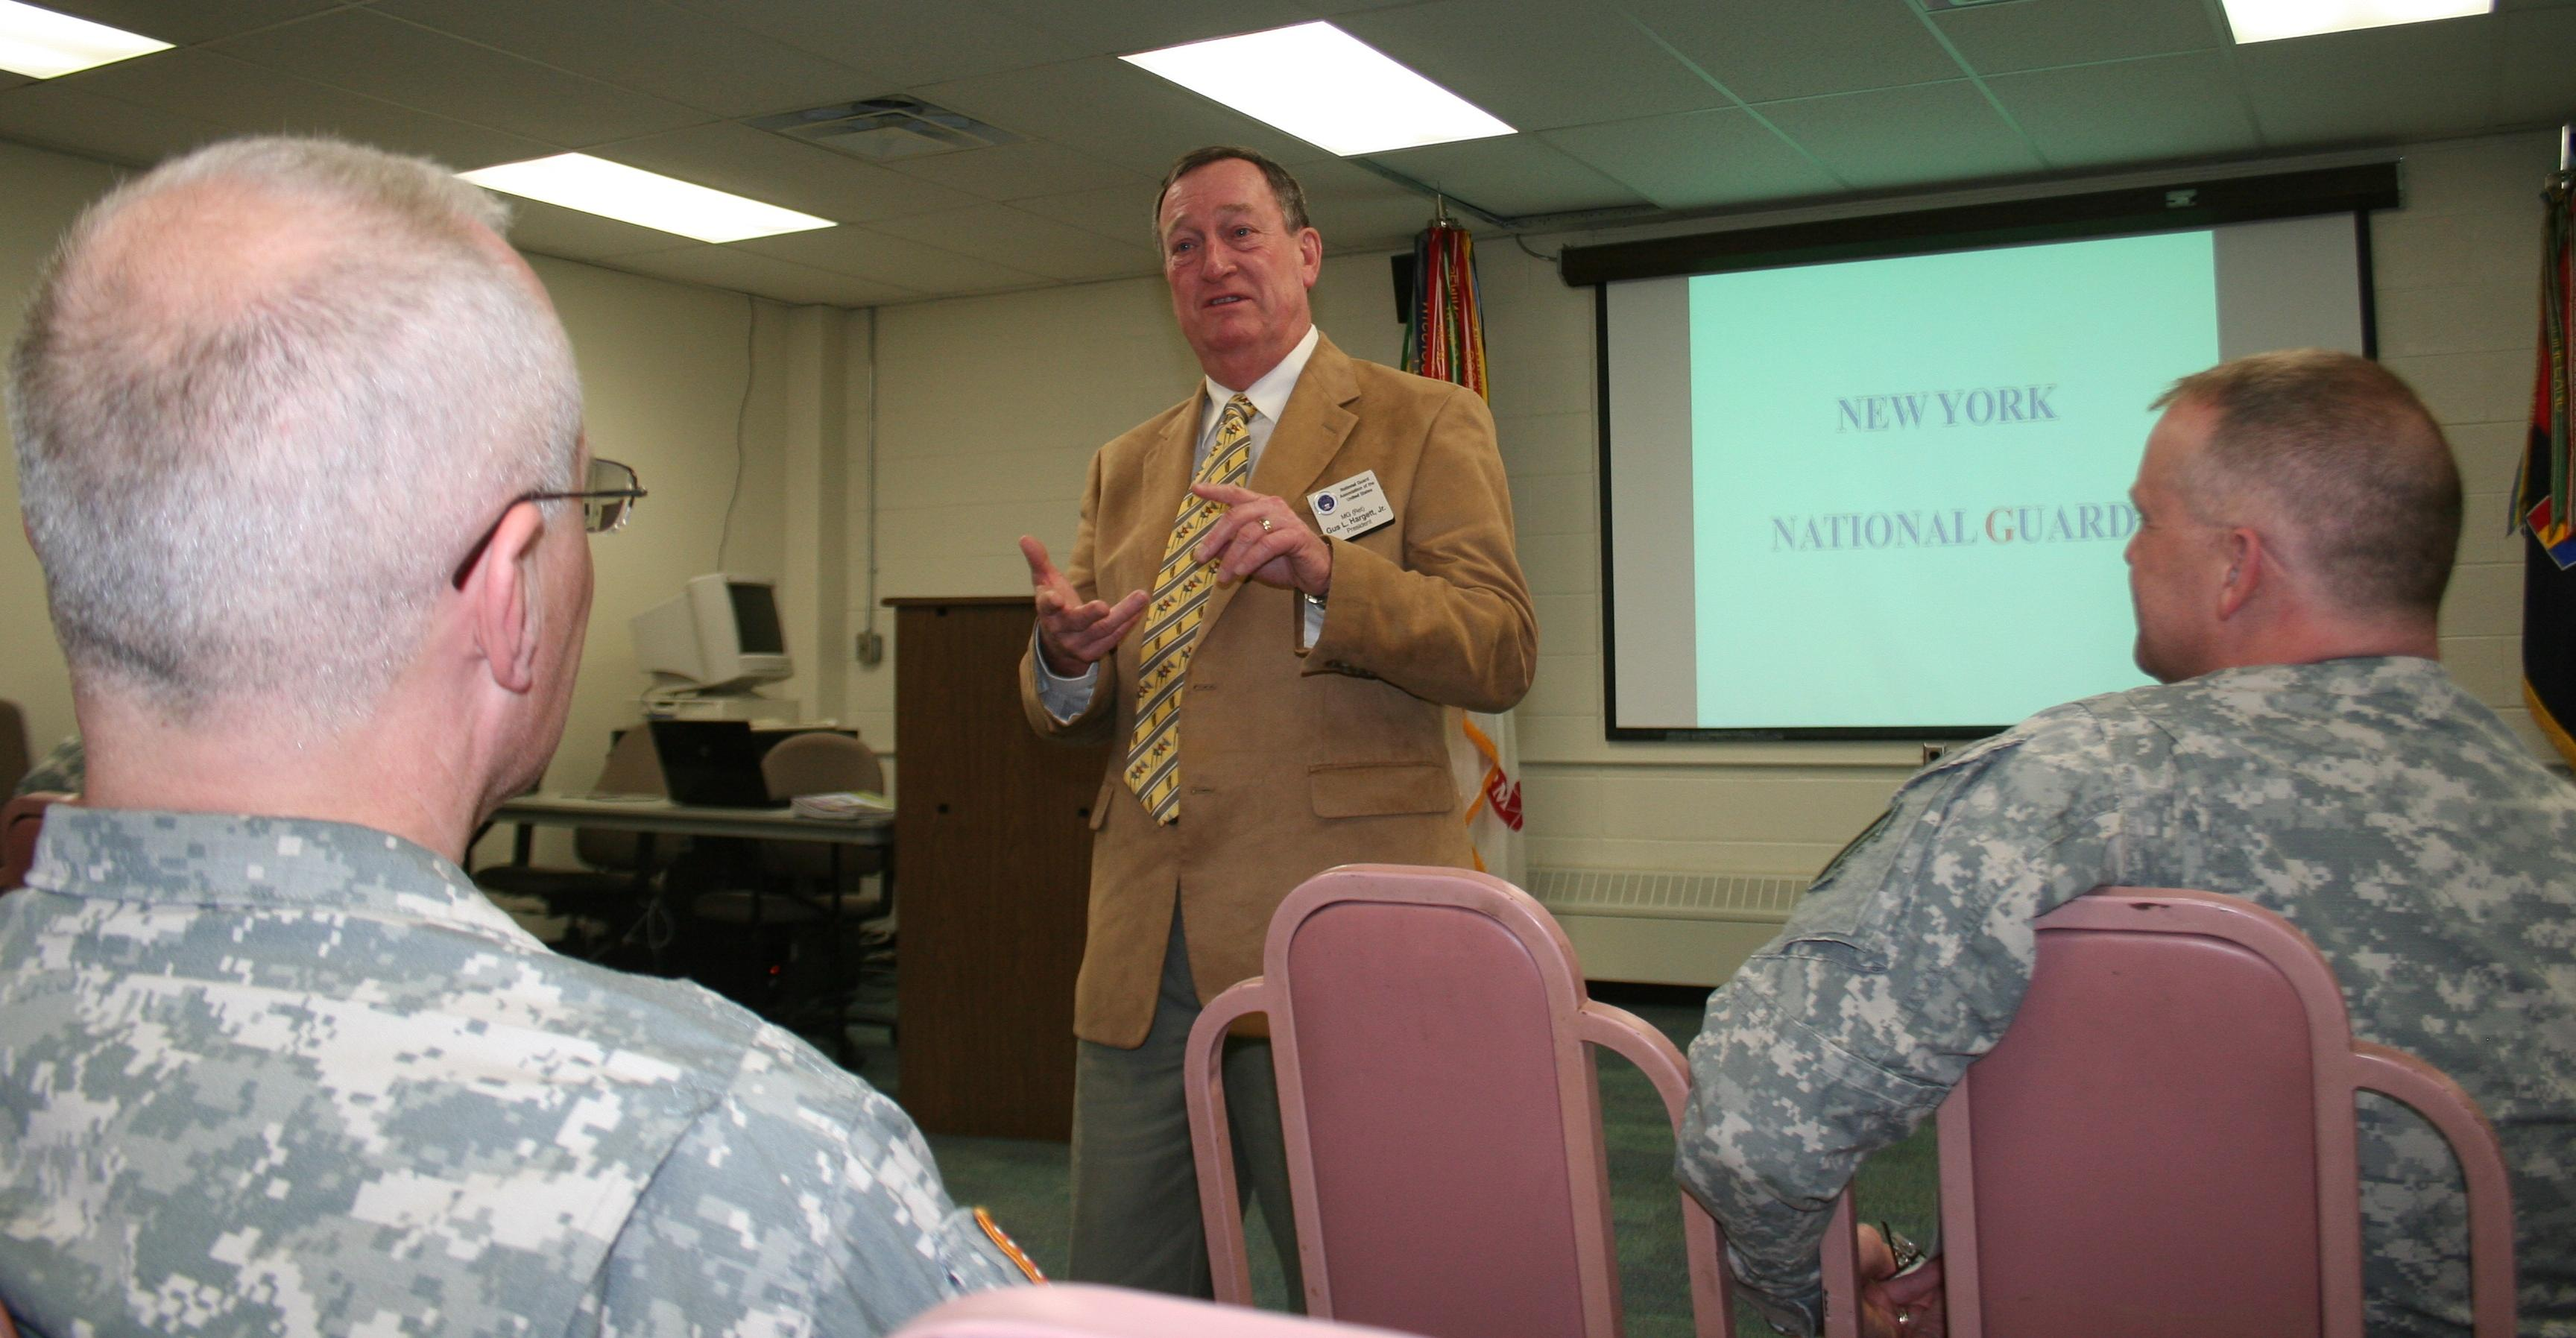 National Guard Association Leader Speaks to 42nd Infantry Division Soldiers